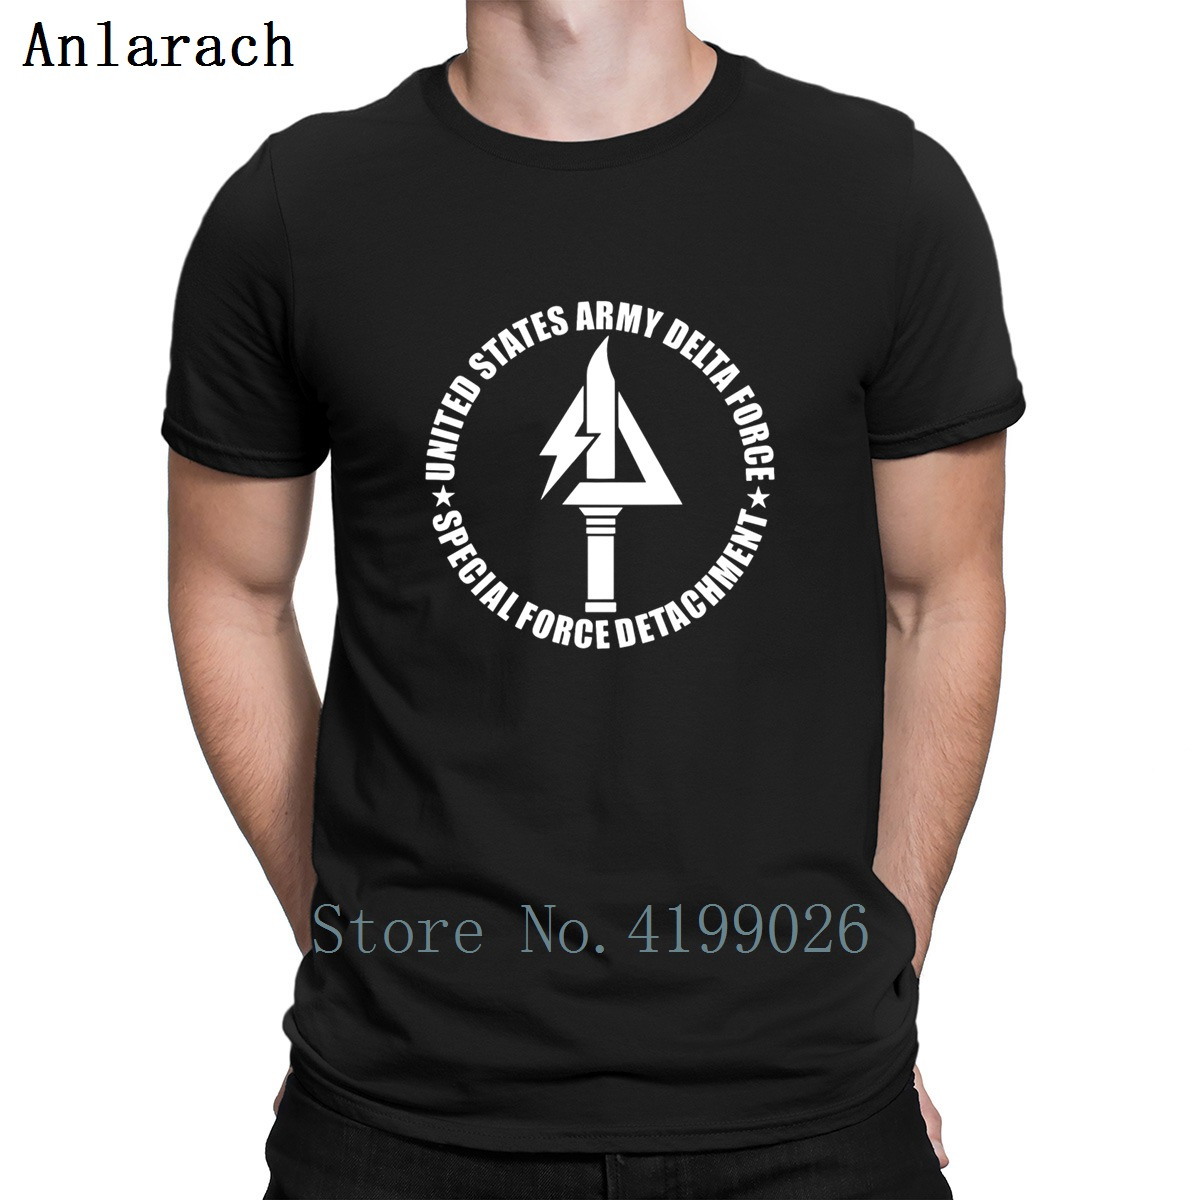 Us Army Deltas Force Tshirts Better Humorous Male Spring Autumn Men s Tshirt Outfit Create O